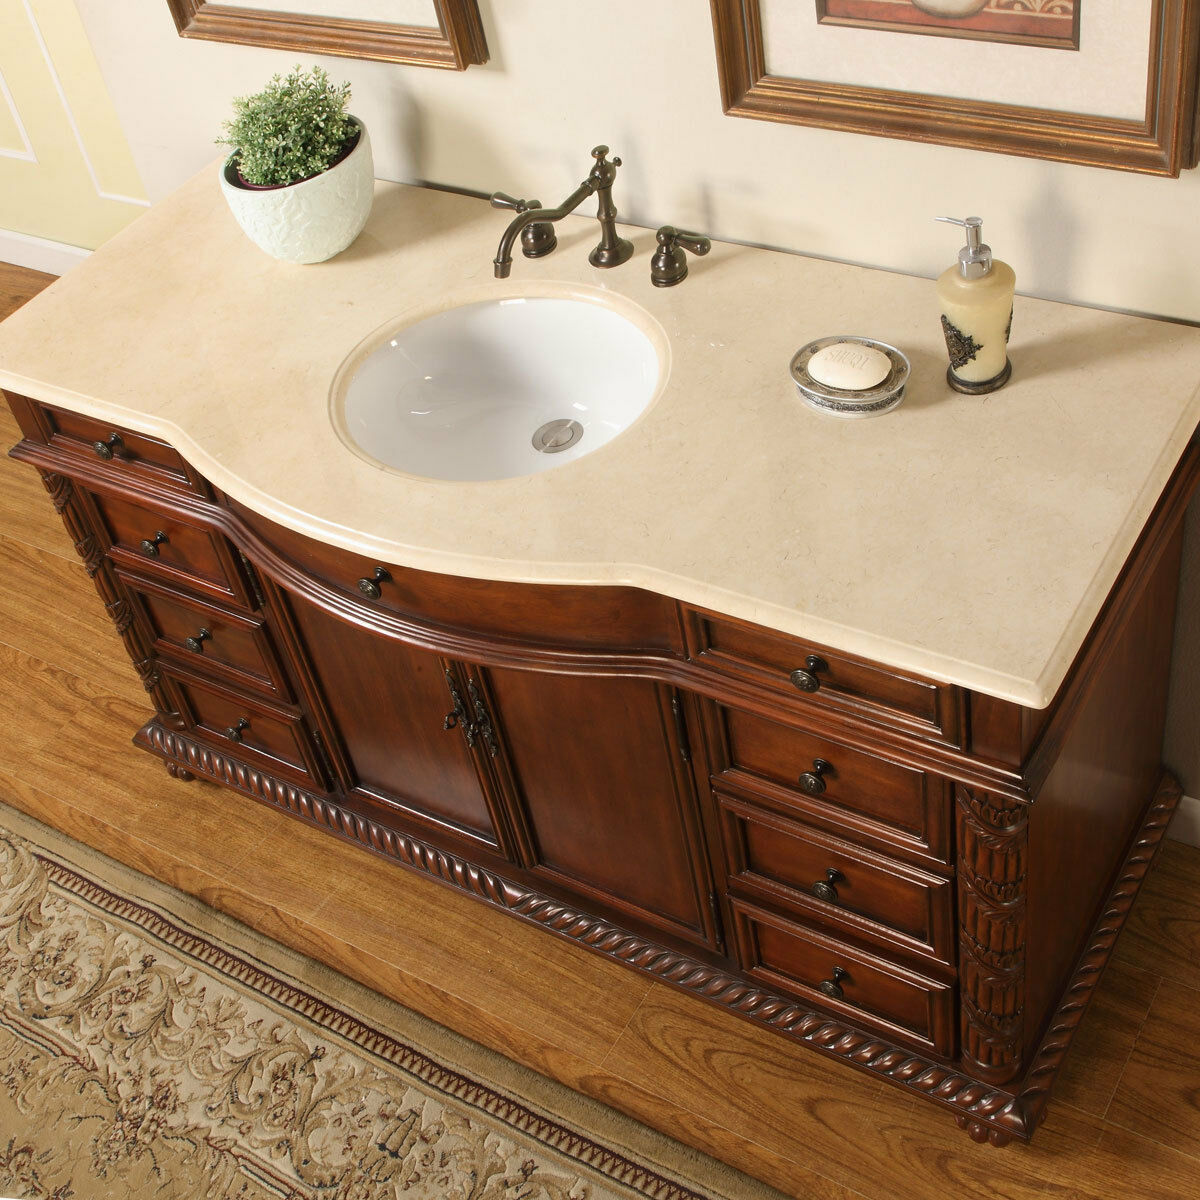 Silkroad exclusive 58 inch marble stone top bathroom vanity lavatory - Picture 1 Of 6